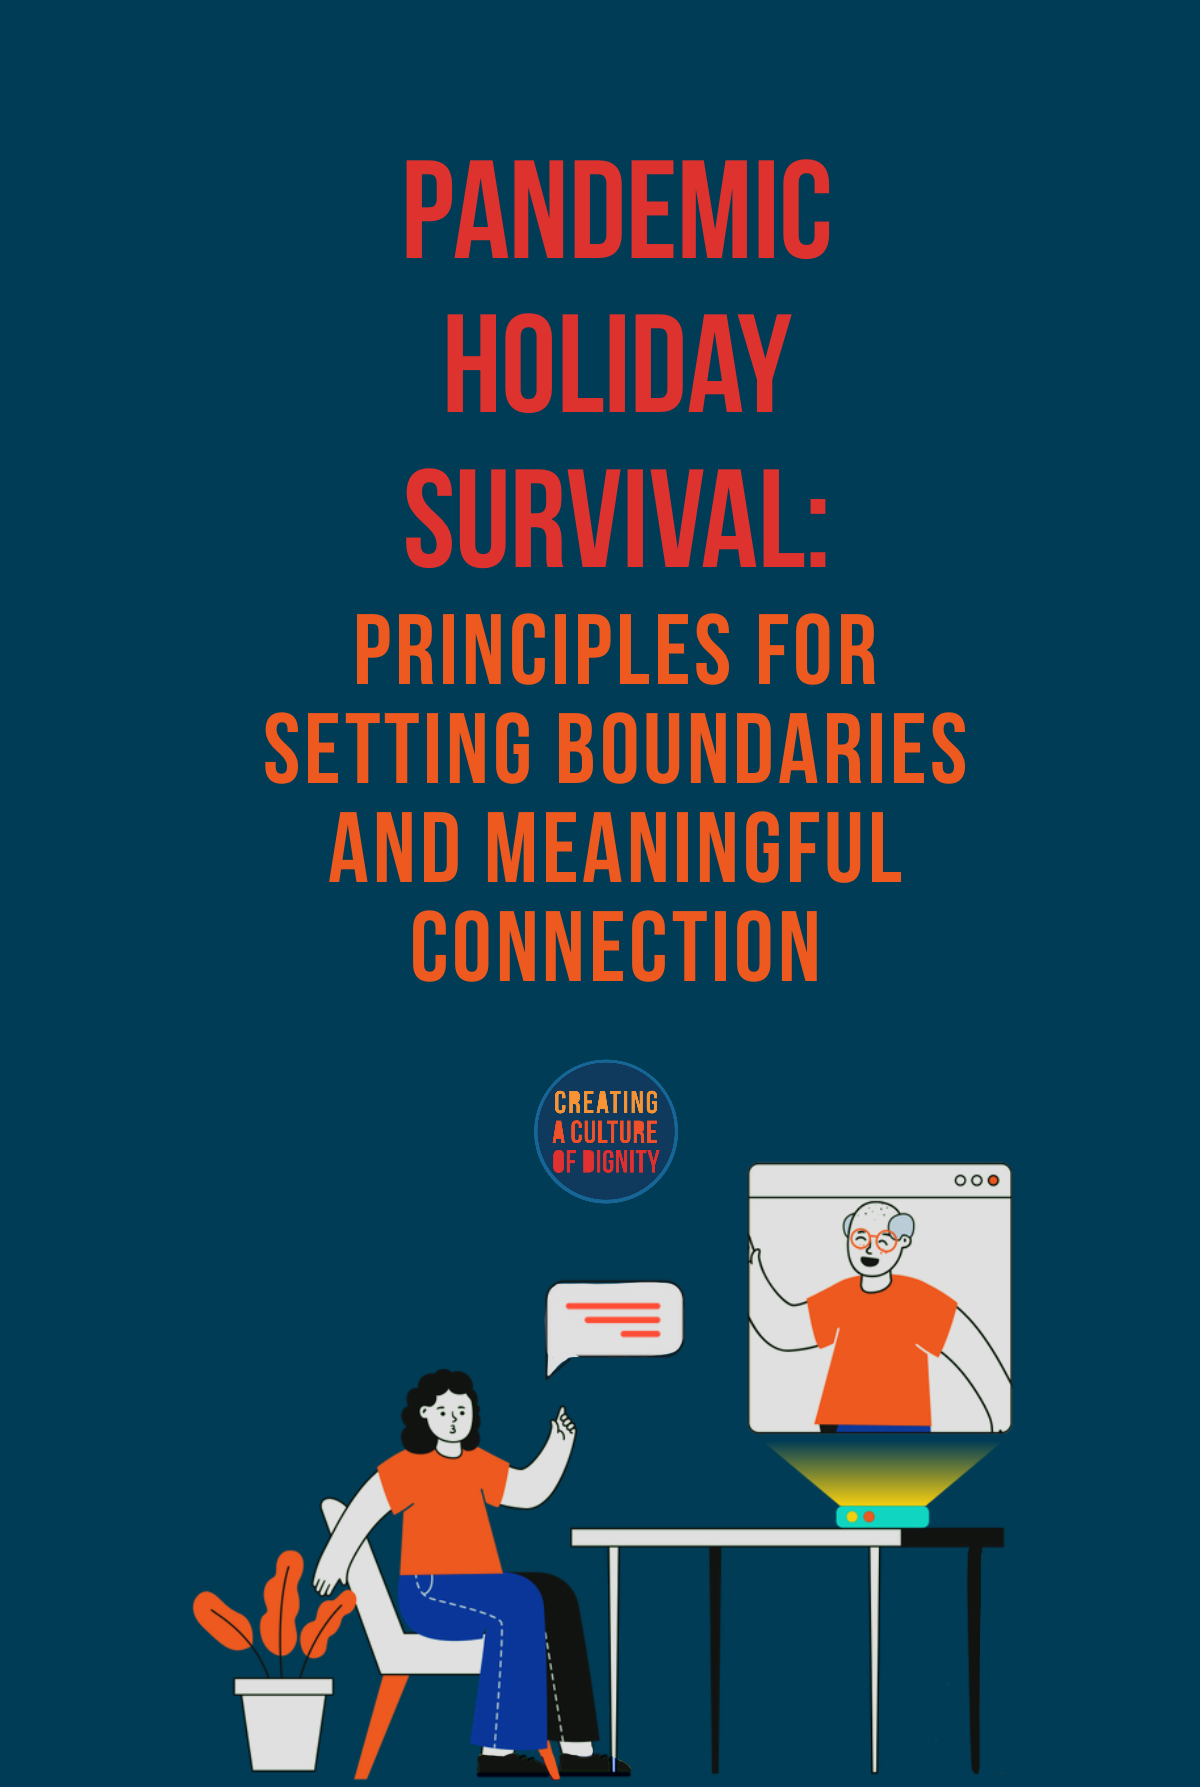 Pandemic Holiday Survival: Principles for Setting Boundaries and Meaningful Connection